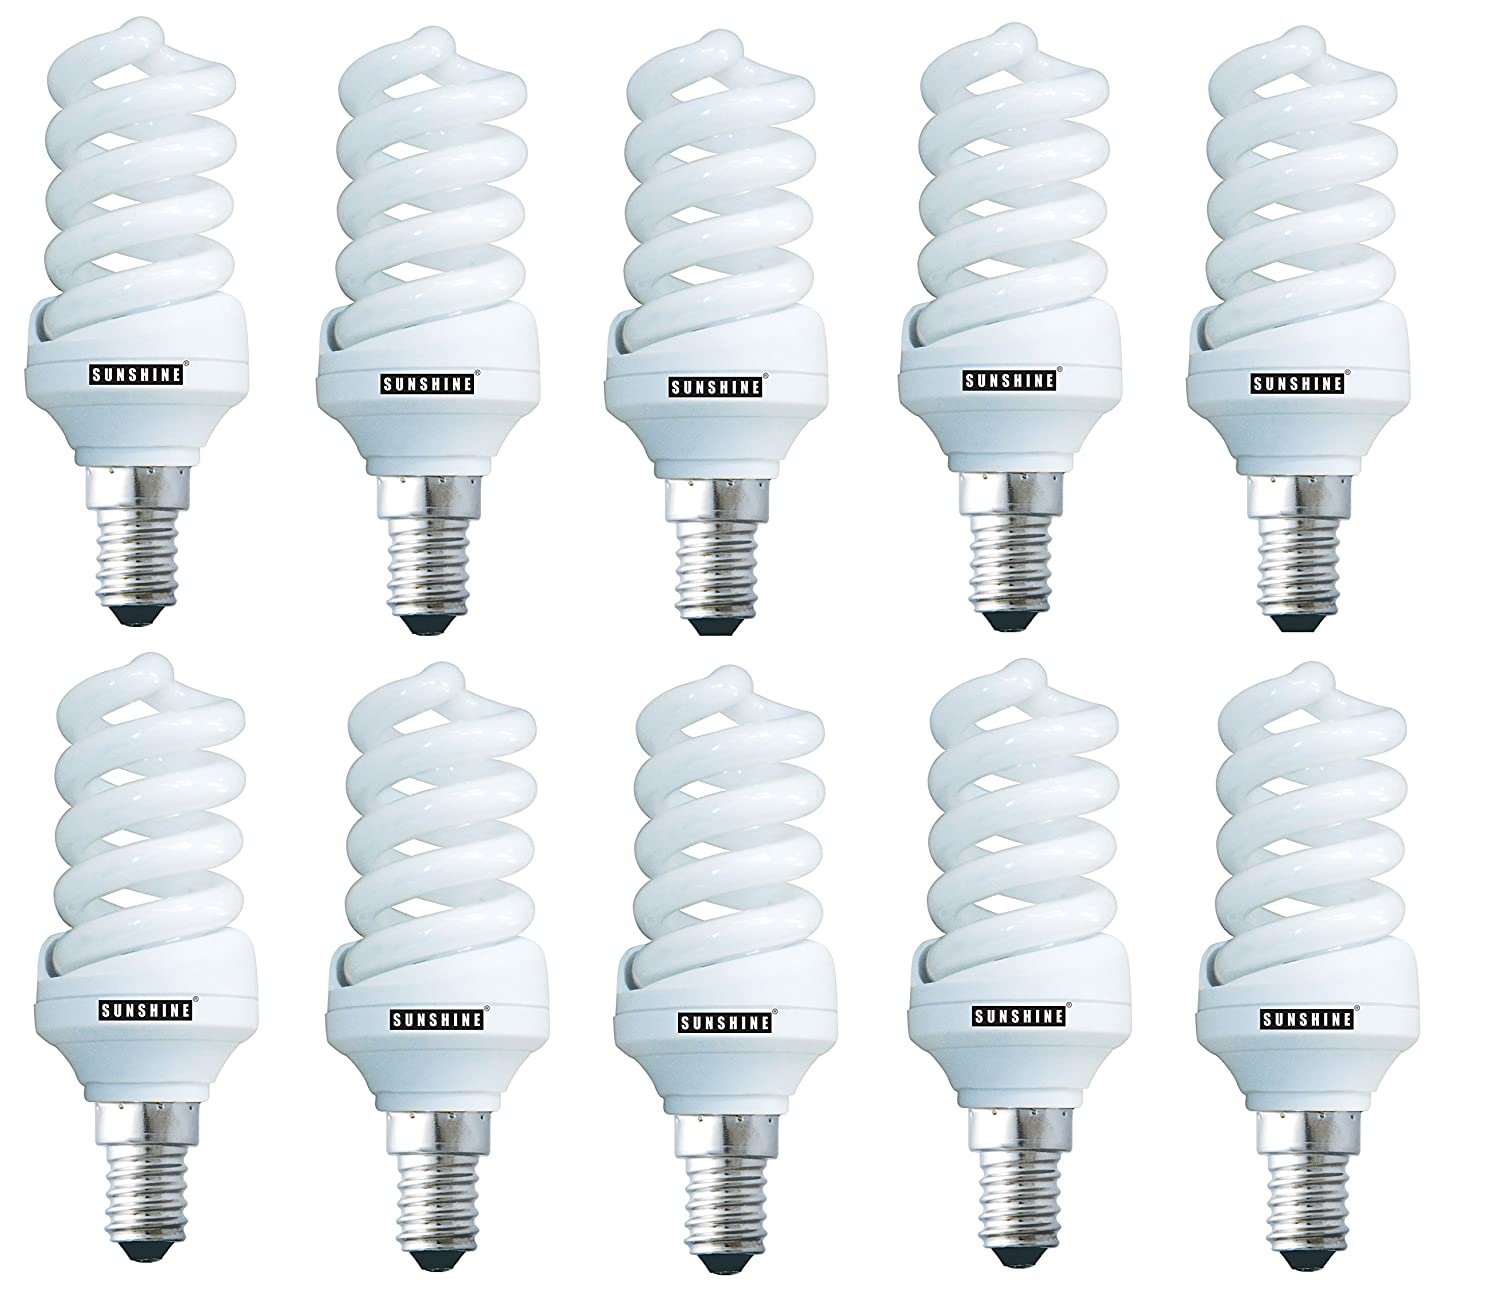 SUNSHINE Energy Saving Lamp 20W E14 Small Edison Screw CFL FULL Spiral Lightbulb - Day Light, Milky (95W Equivalent), Pack of 10